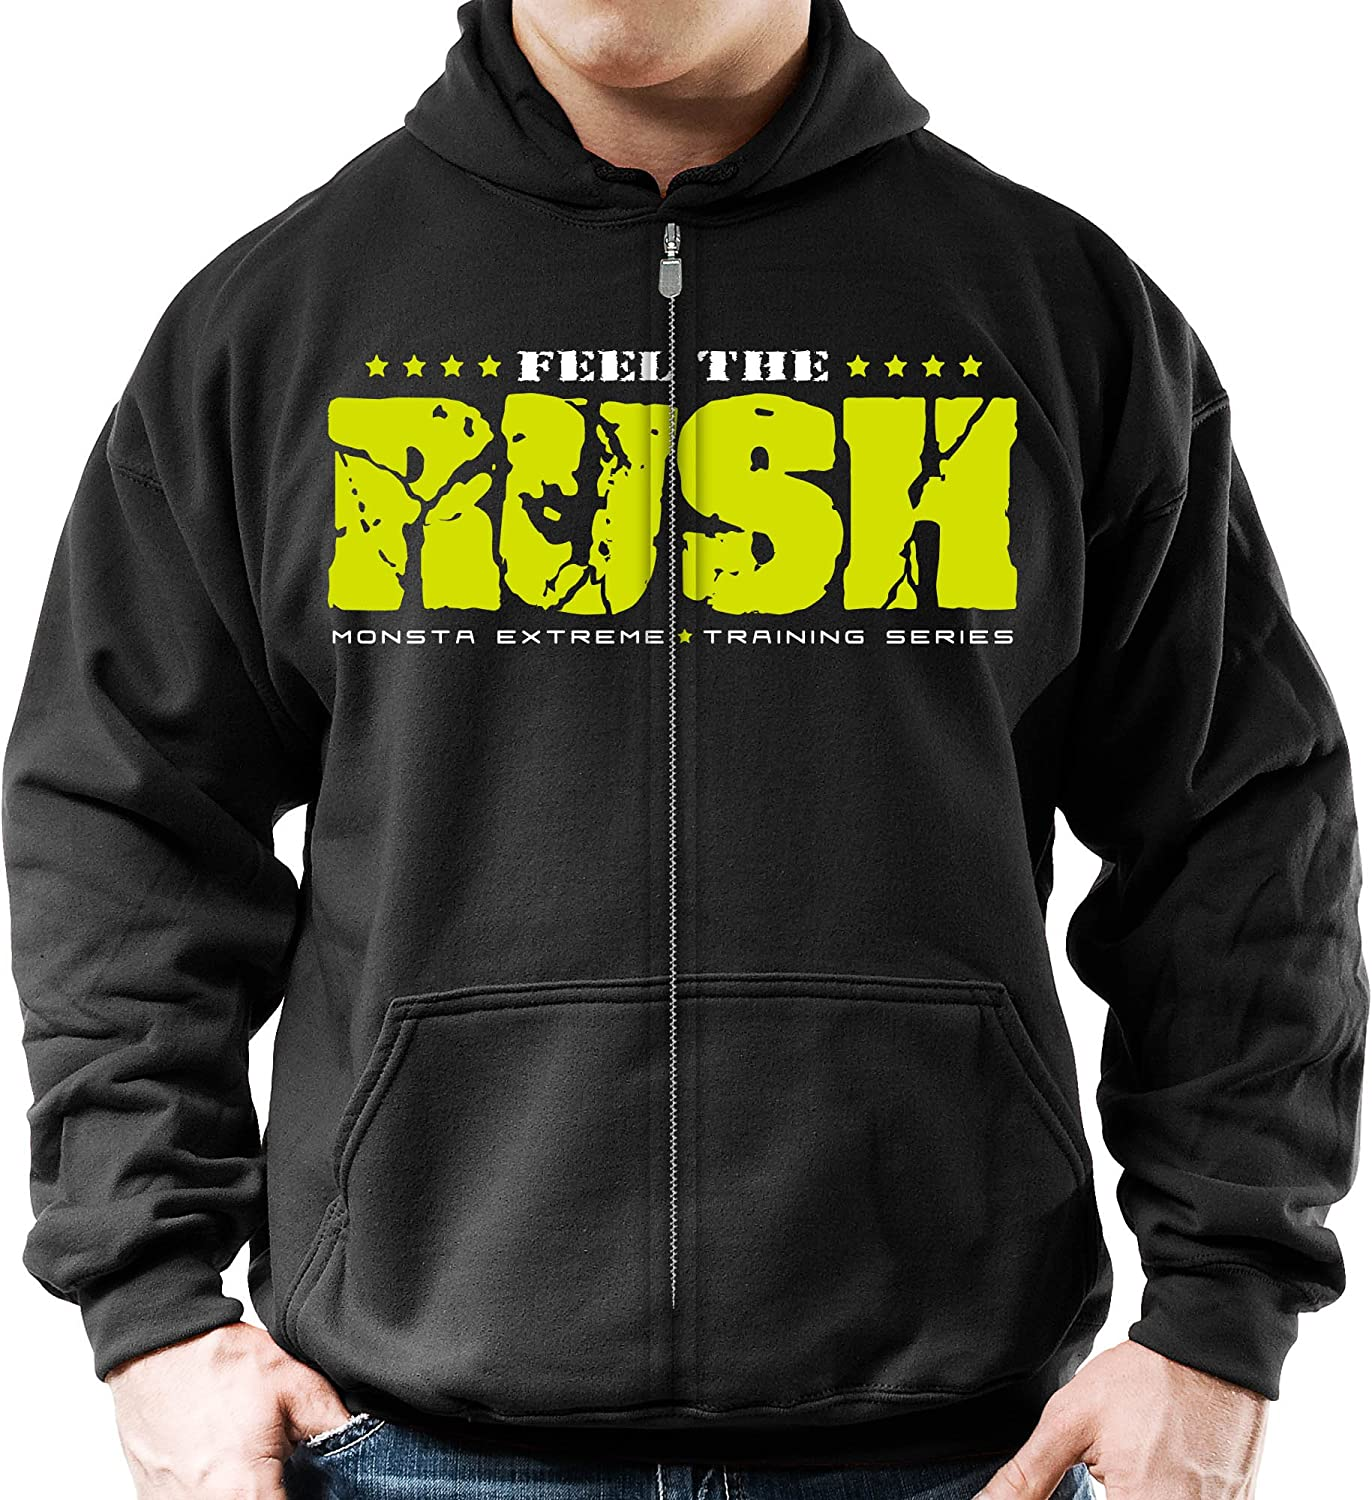 The Hulk Mens Gym Hoodie Training Top Bodybuilding MMA Fitness Weightlifting